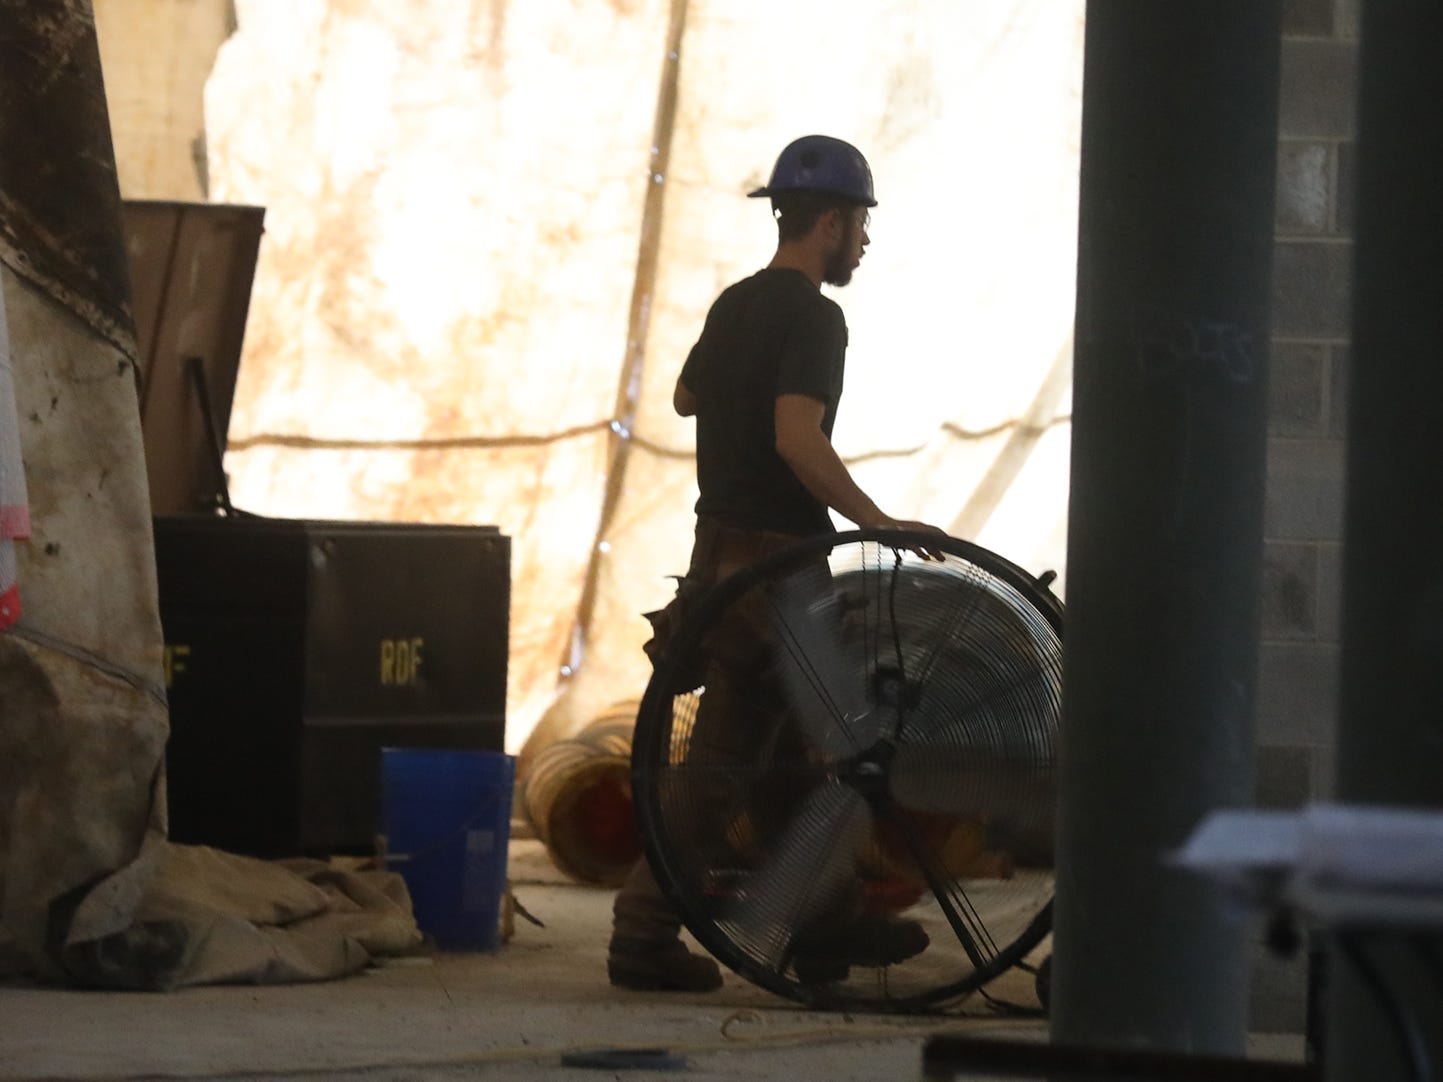 A construction worker passes through to an area he is working in.